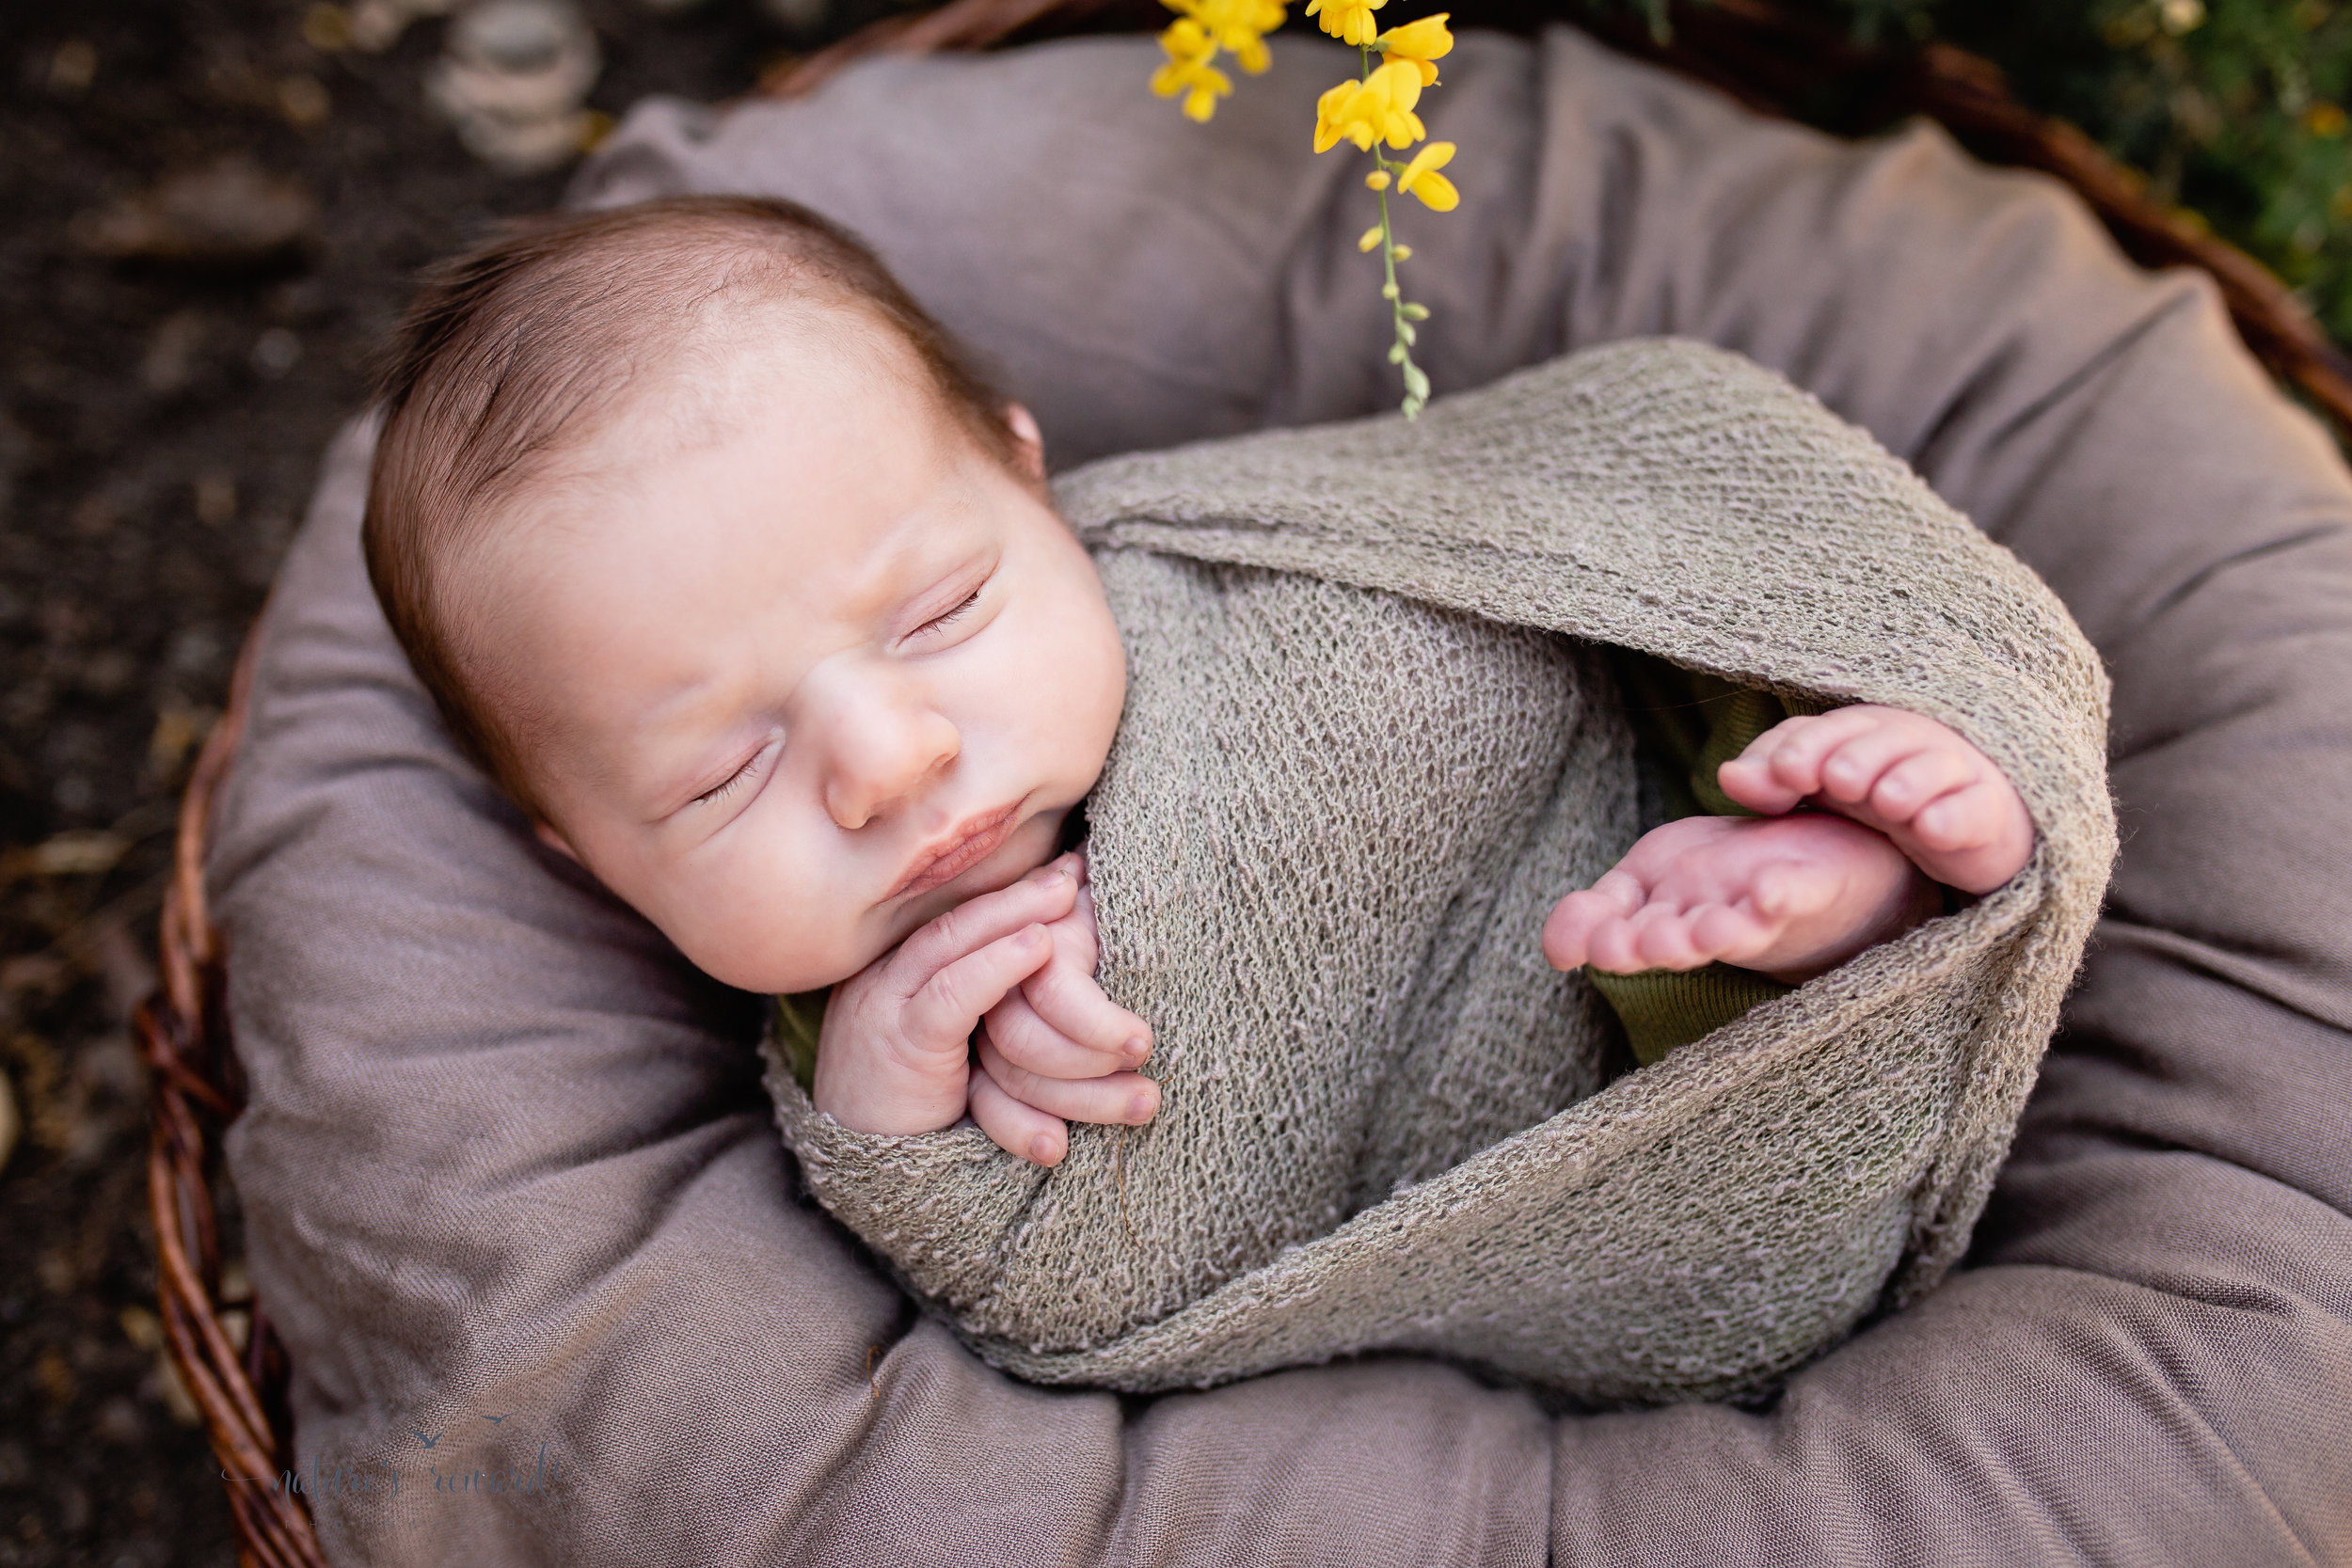 Gorgeous Lighting on this baby boy in the garden photography session while he lays peacefully in a basket featuring soft greens and browns in this portrait by Nature's Reward Photography